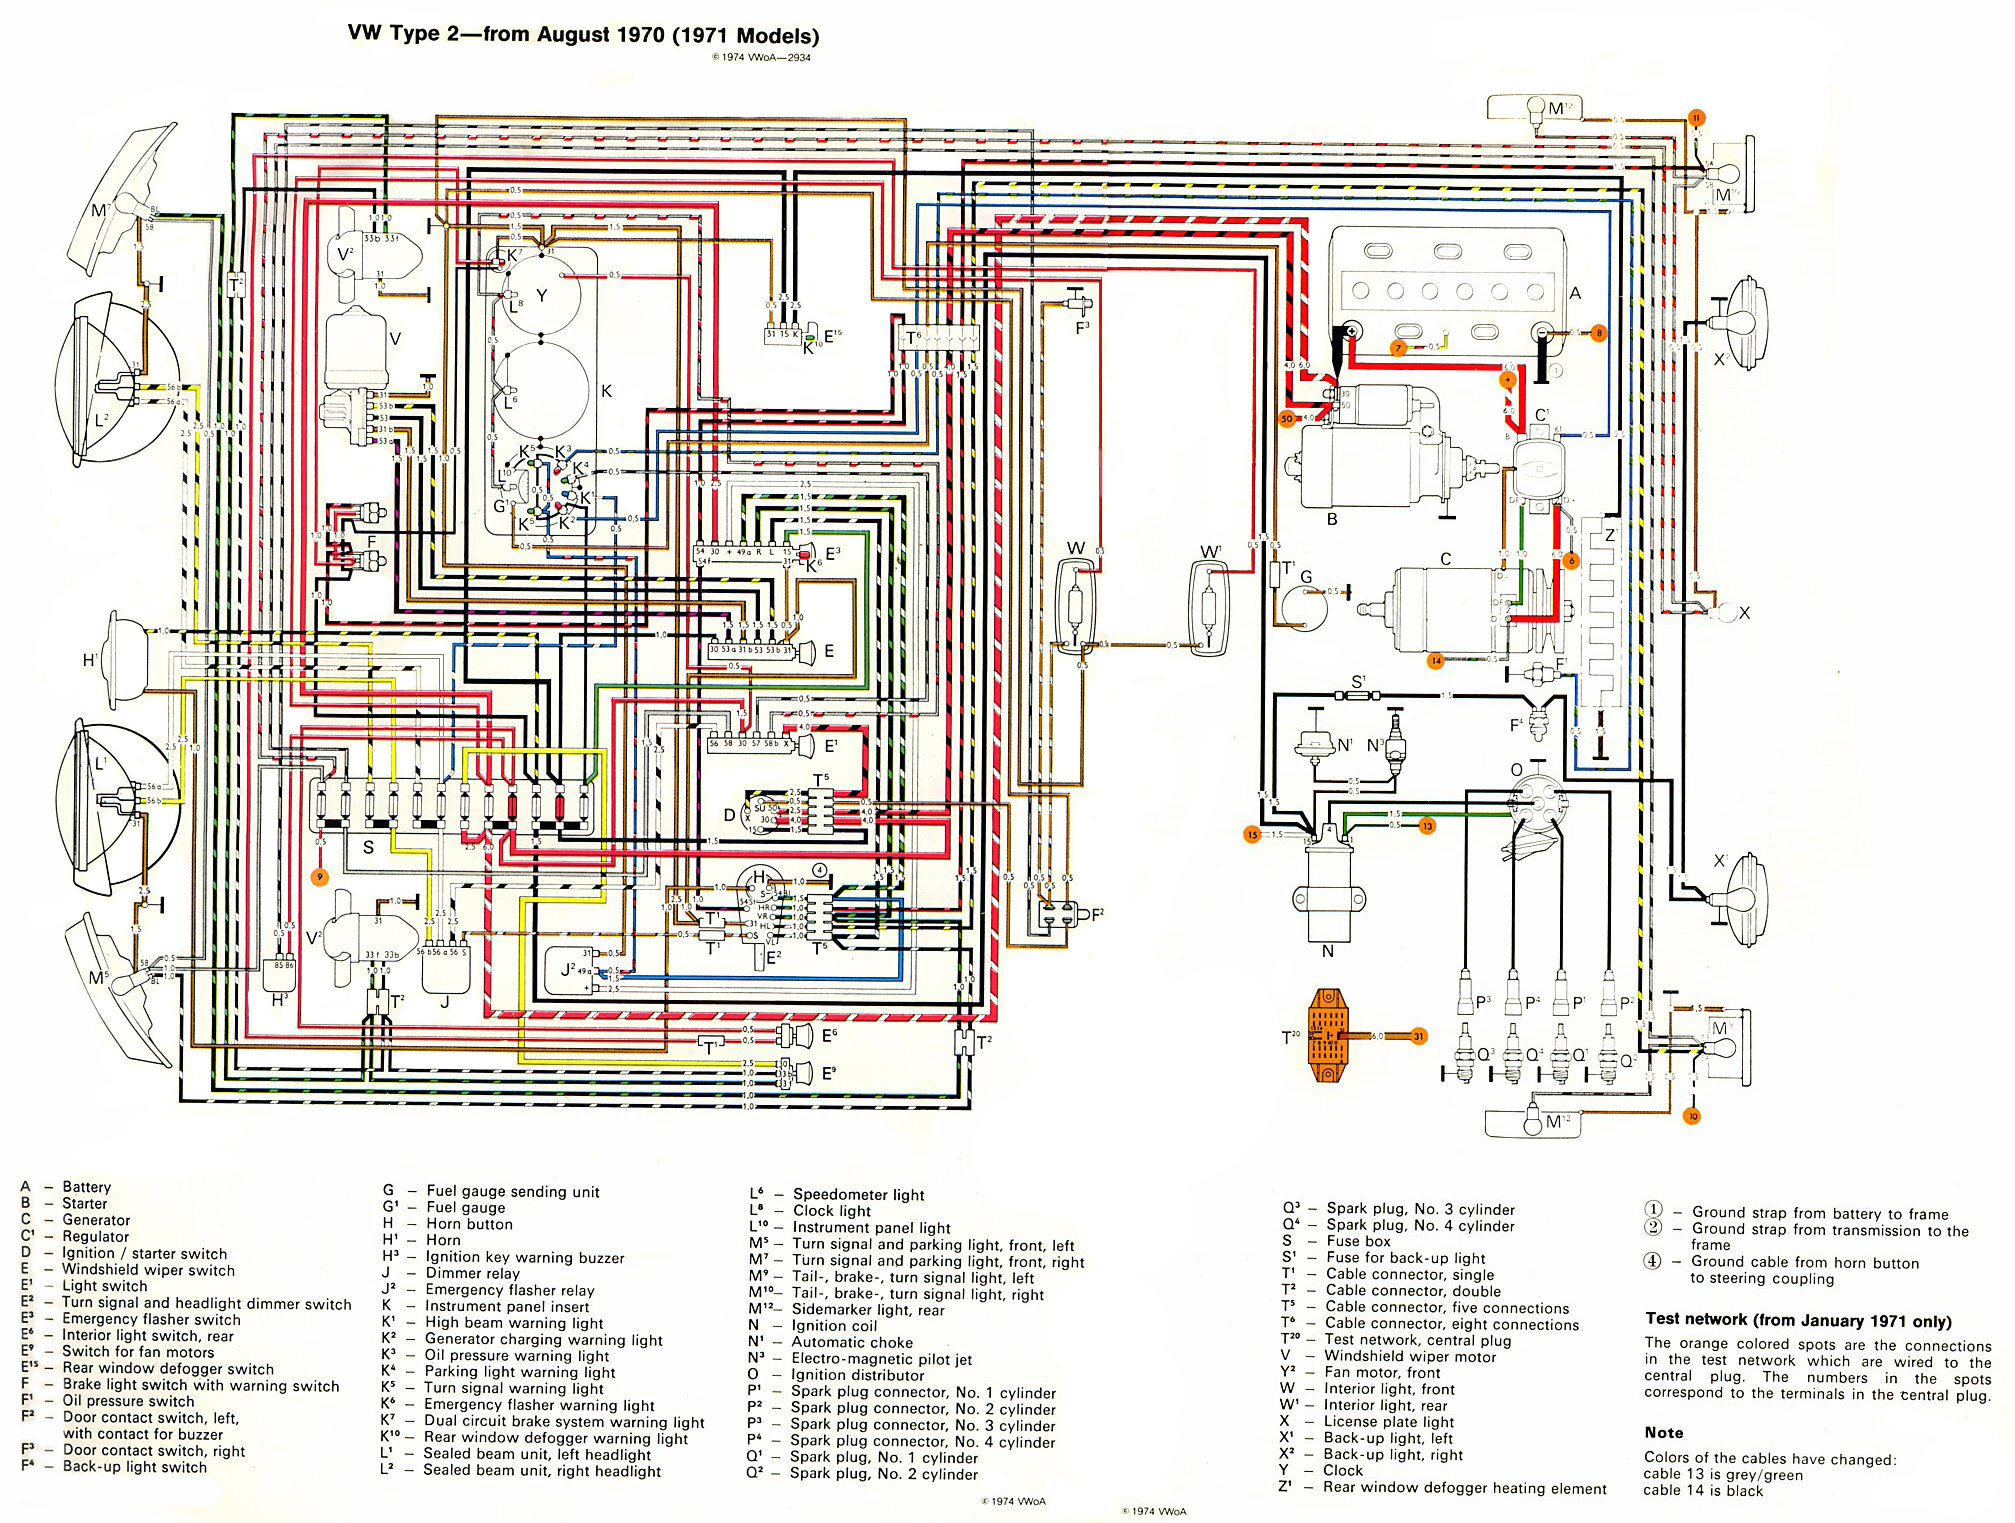 baybus_71_fixed bad boy buggy wiring diagram 36 volt ezgo wiring diagram 1997 vw golf wiring diagram at mr168.co